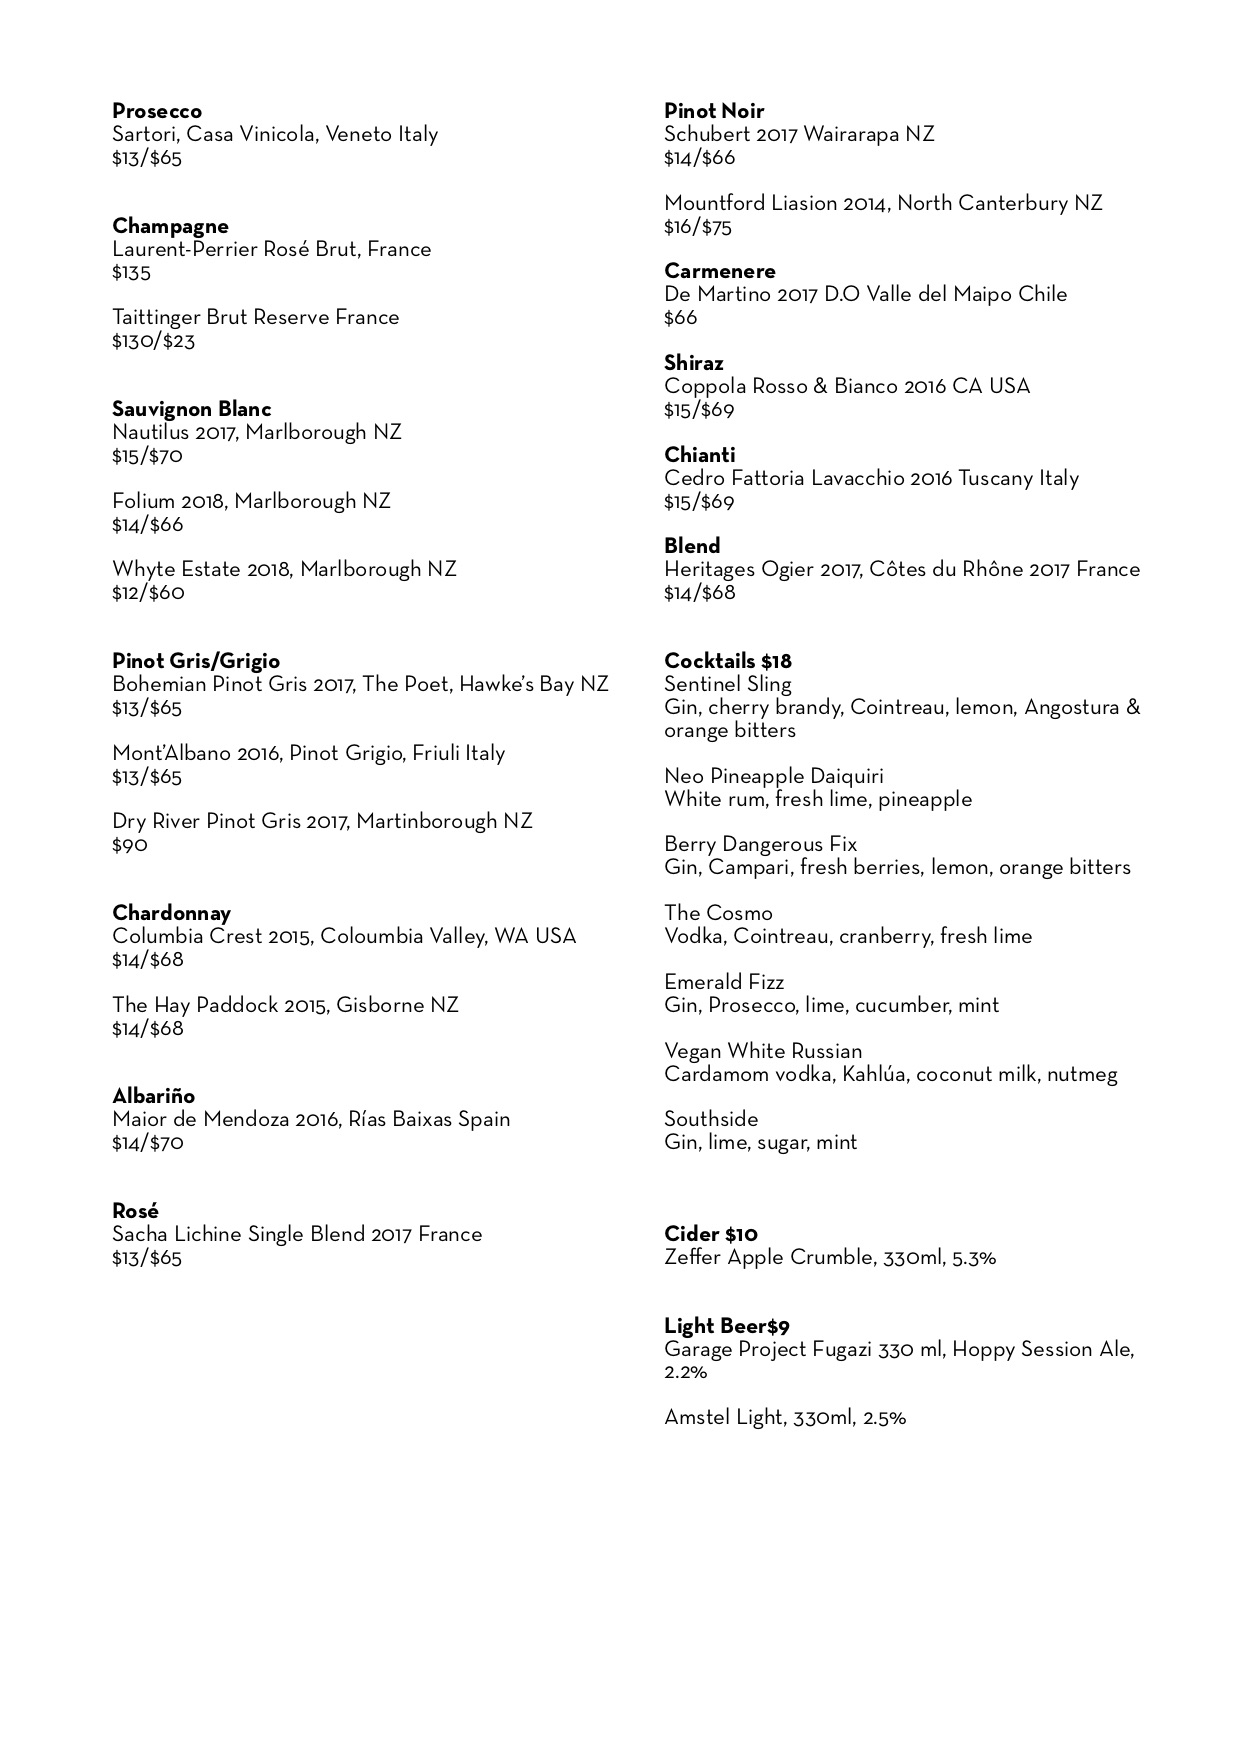 THE new Winelist- Drinks only page 2.jpg